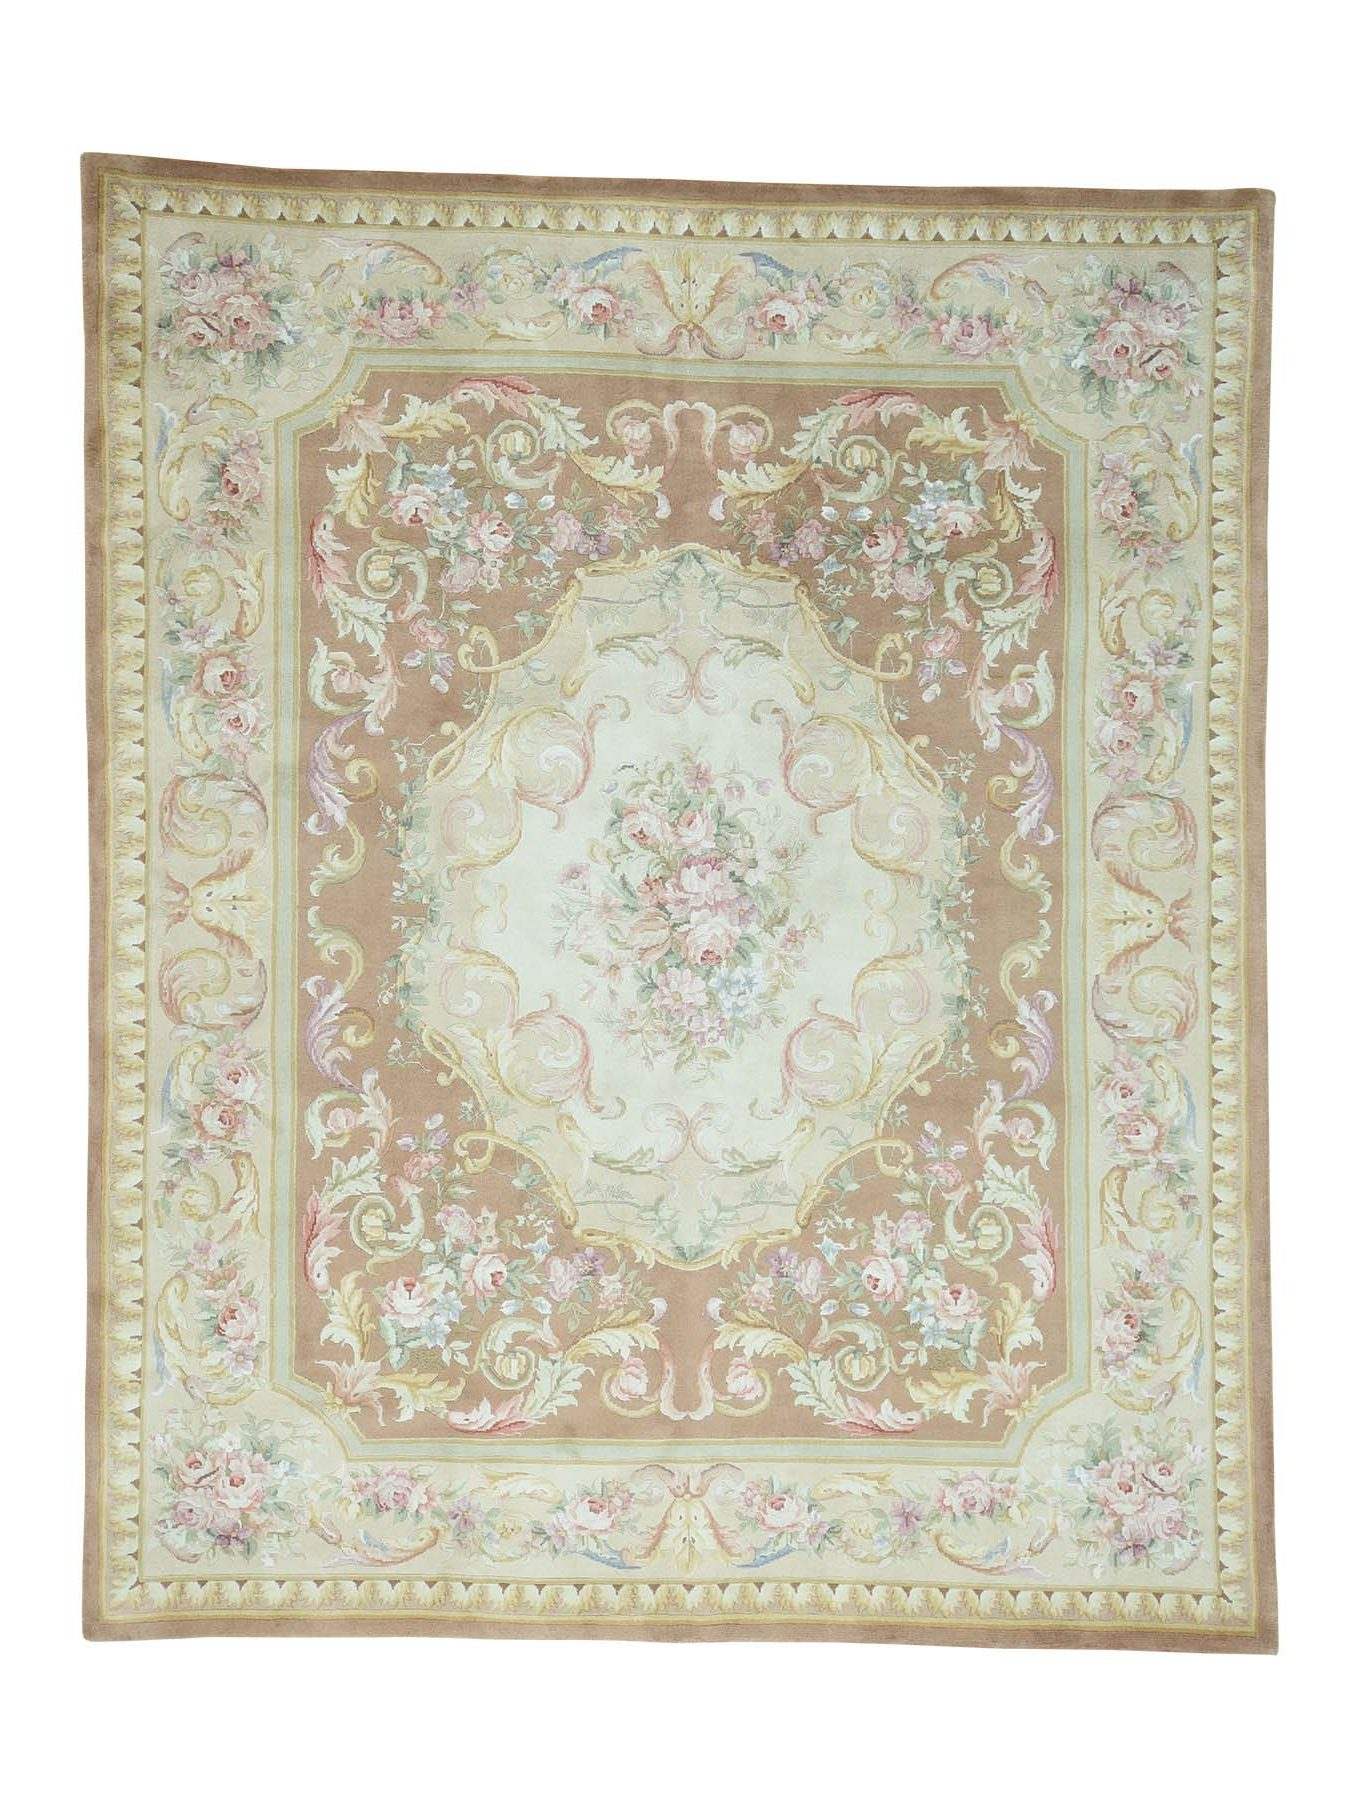 dating oriental rugs More depictions of oriental carpets in renaissance painting survive than actual carpets the dating and authorship of the portrait 'oriental rugs in.